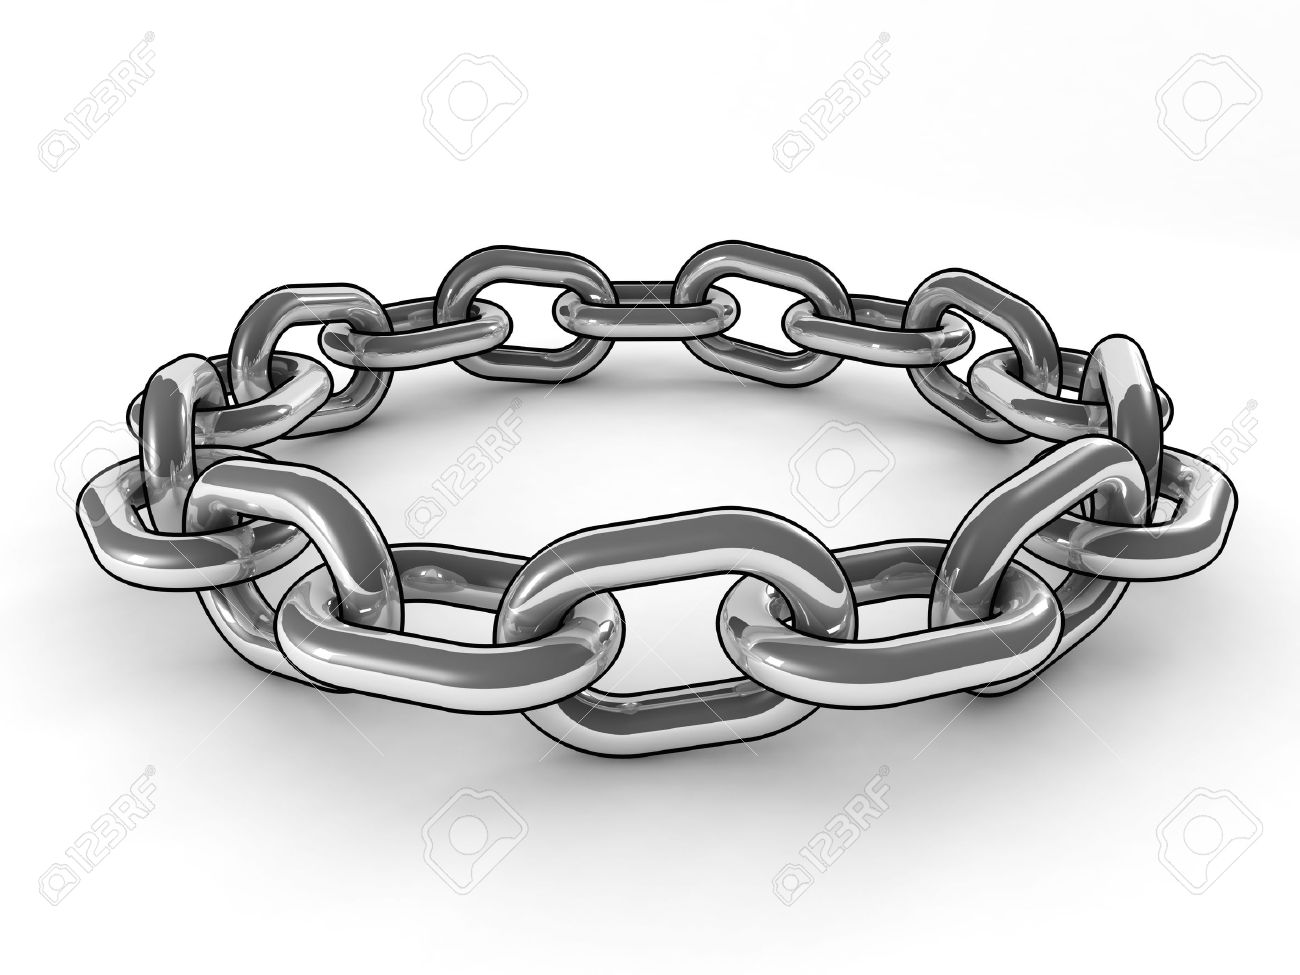 Fine 3d Image Of Metal Ring Chain Cartoon Style Stock Photo, Picture And  Royalty Free Image. Image 9852810.